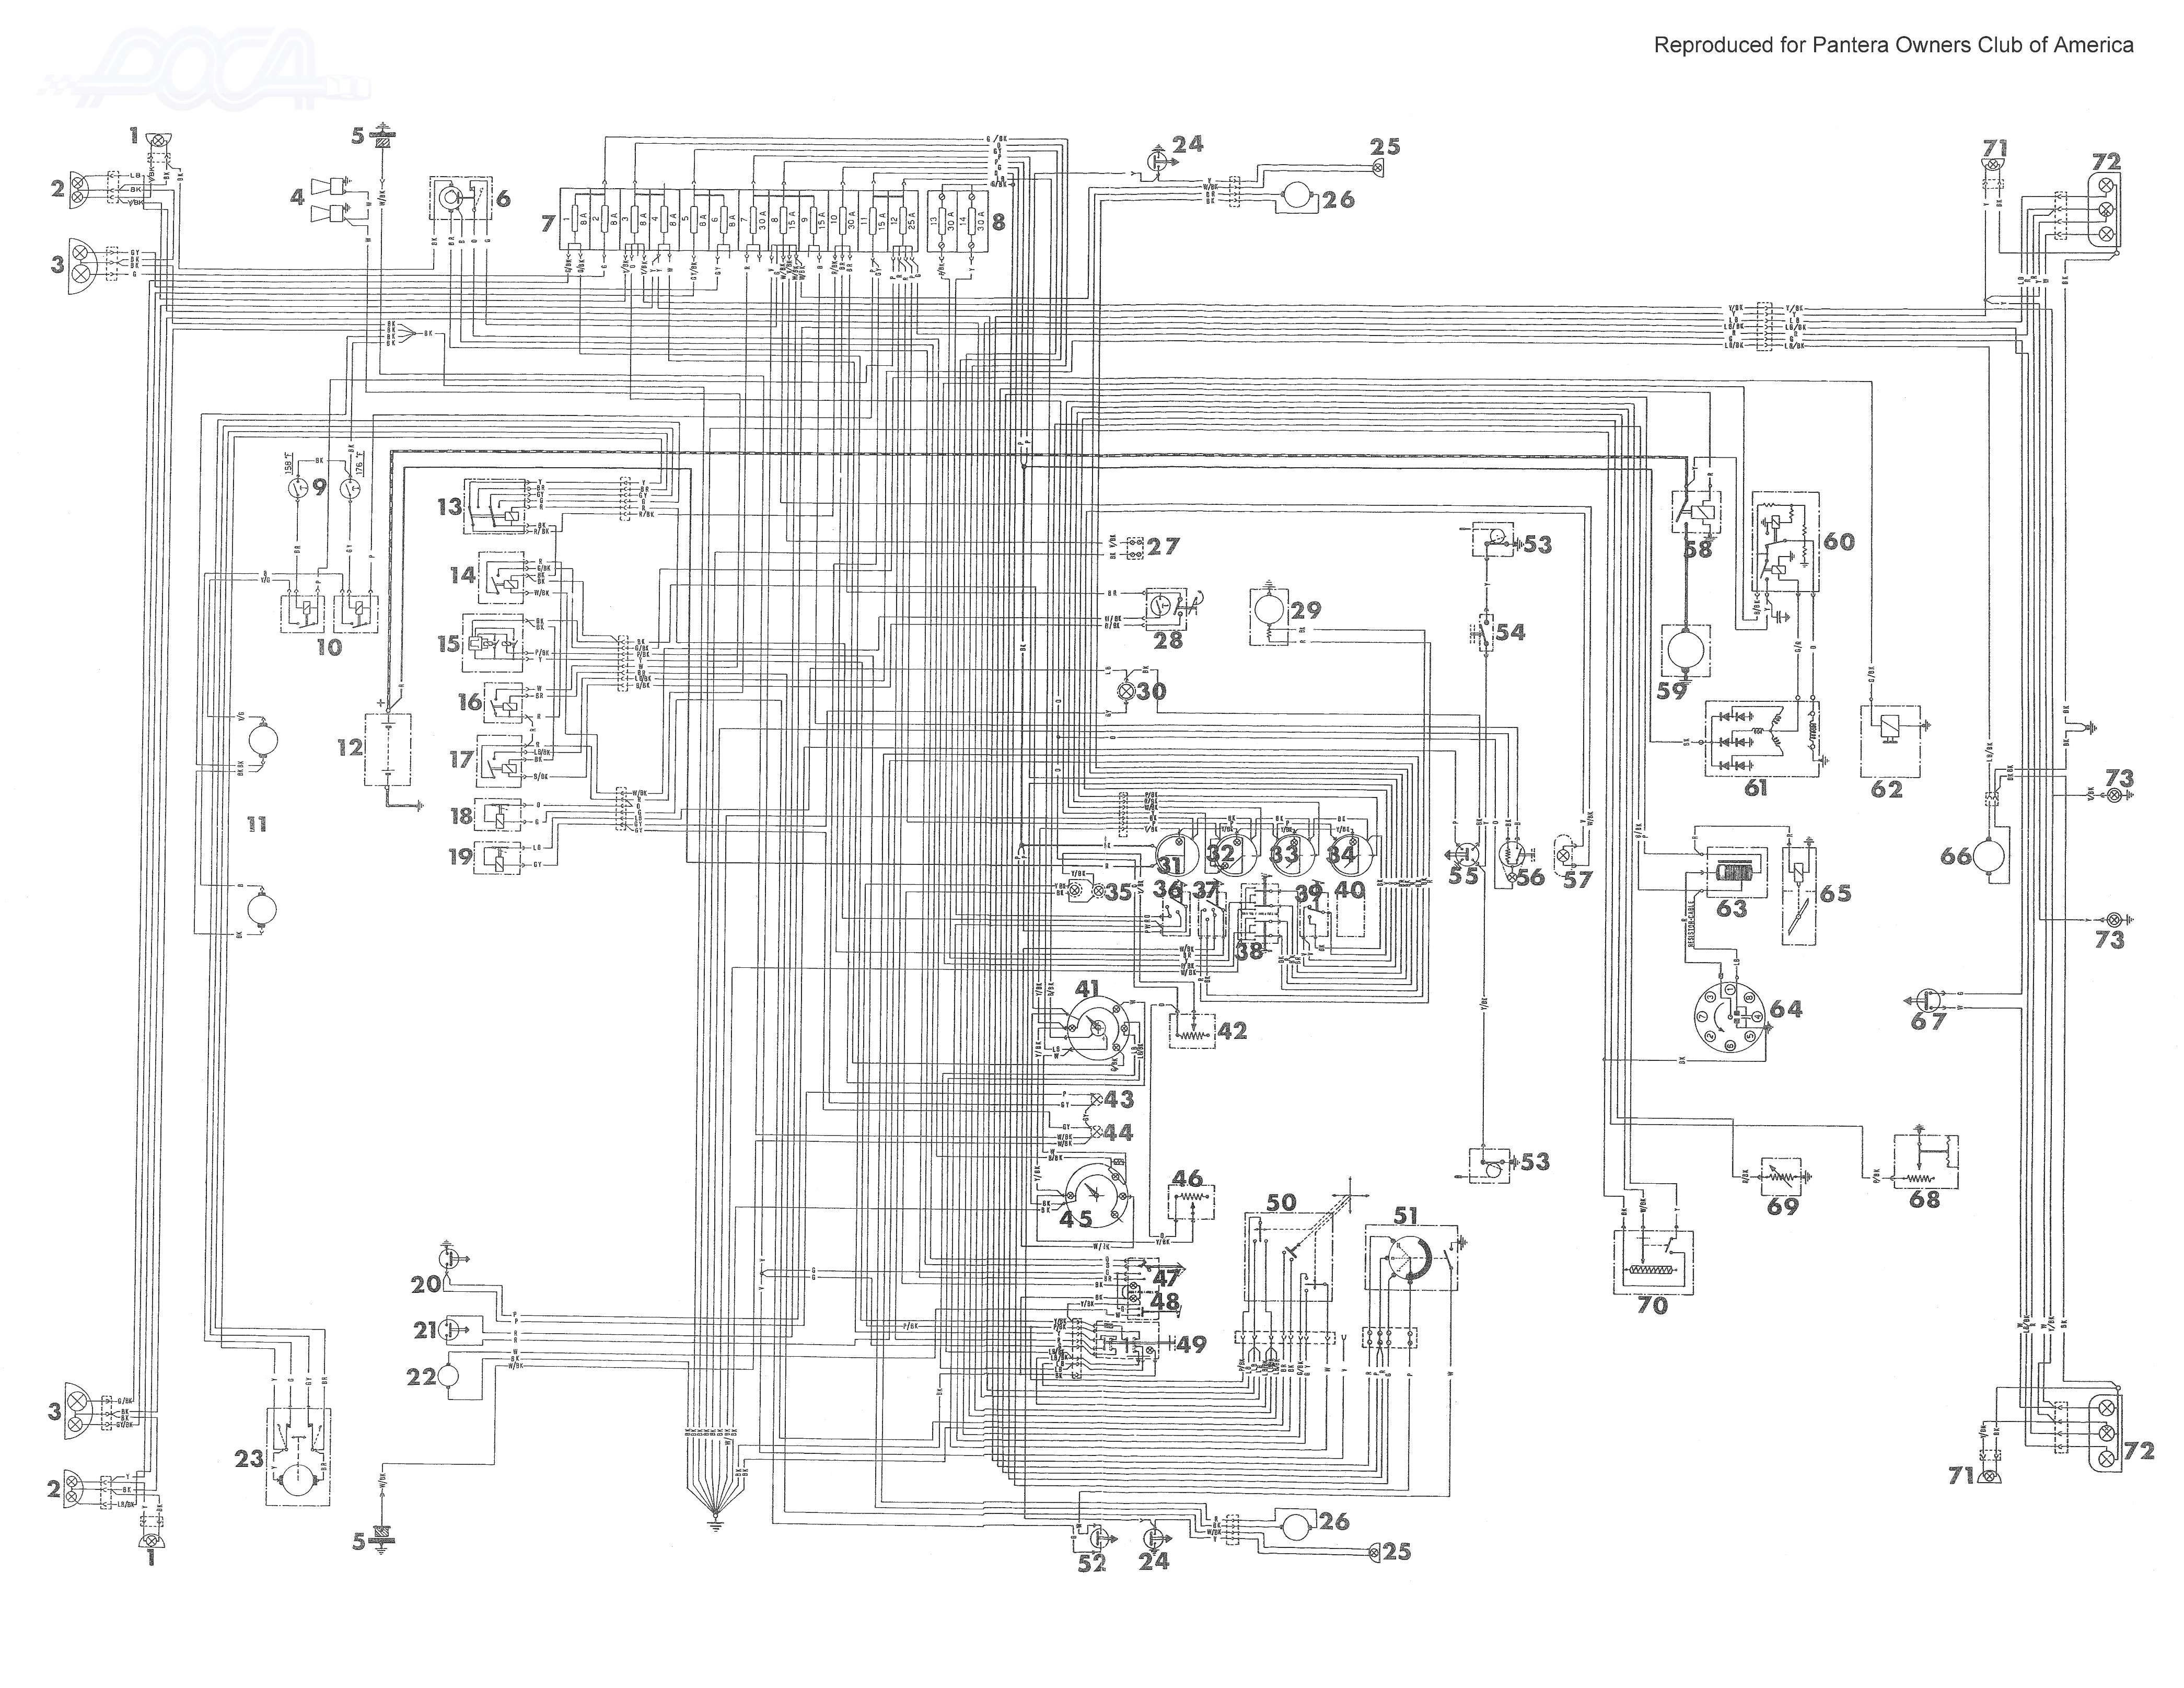 Circuit Iveco Drawing Cabinet Afif Picturesque B Wiring Diagrams De Tomaso Car Manuals Fault Codes 4180x3230